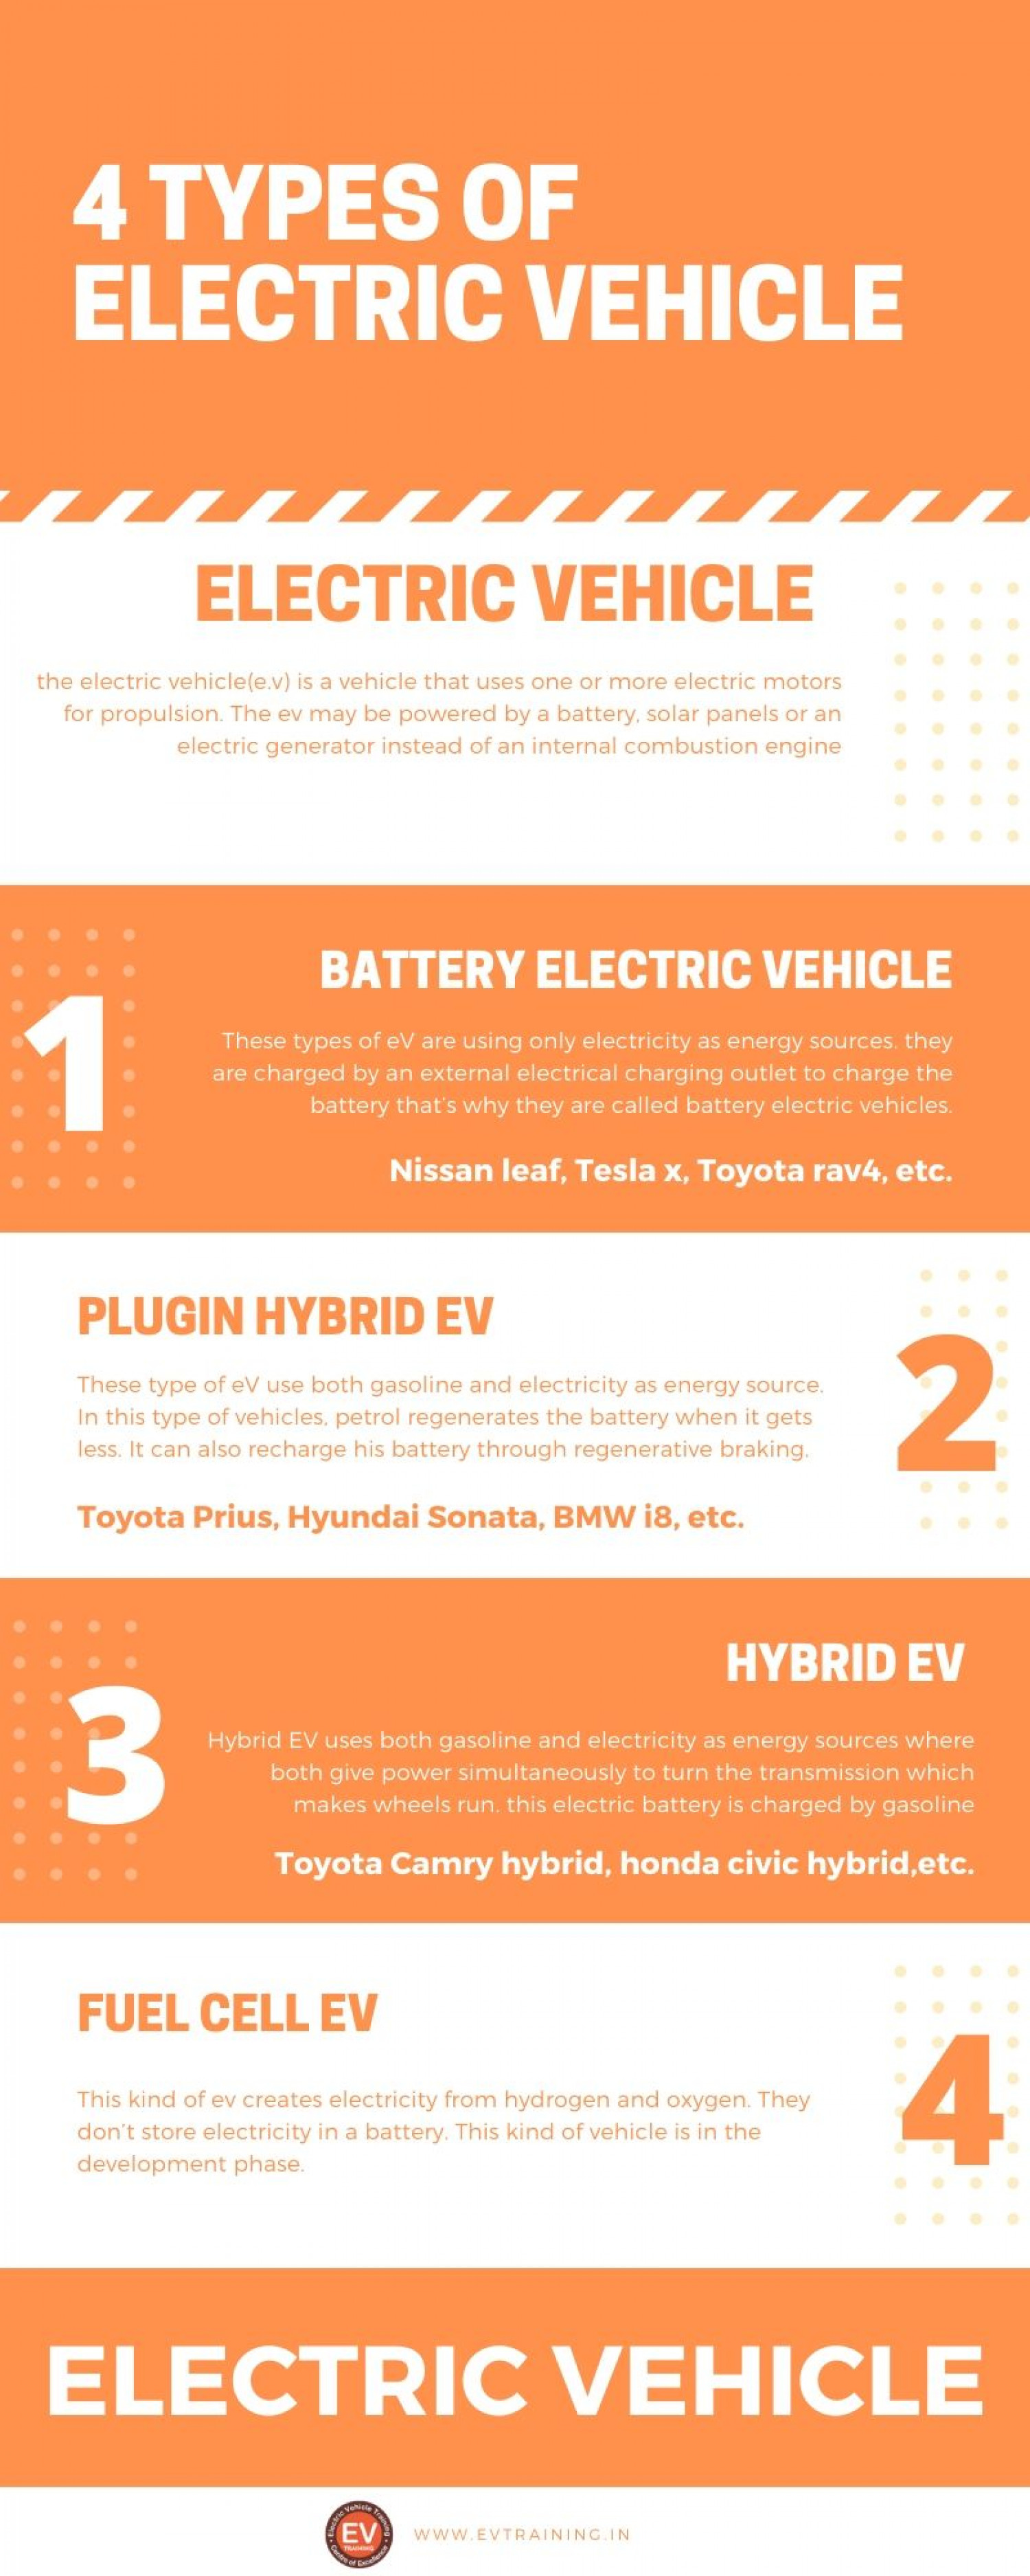 Types of electric vehicle Infographic